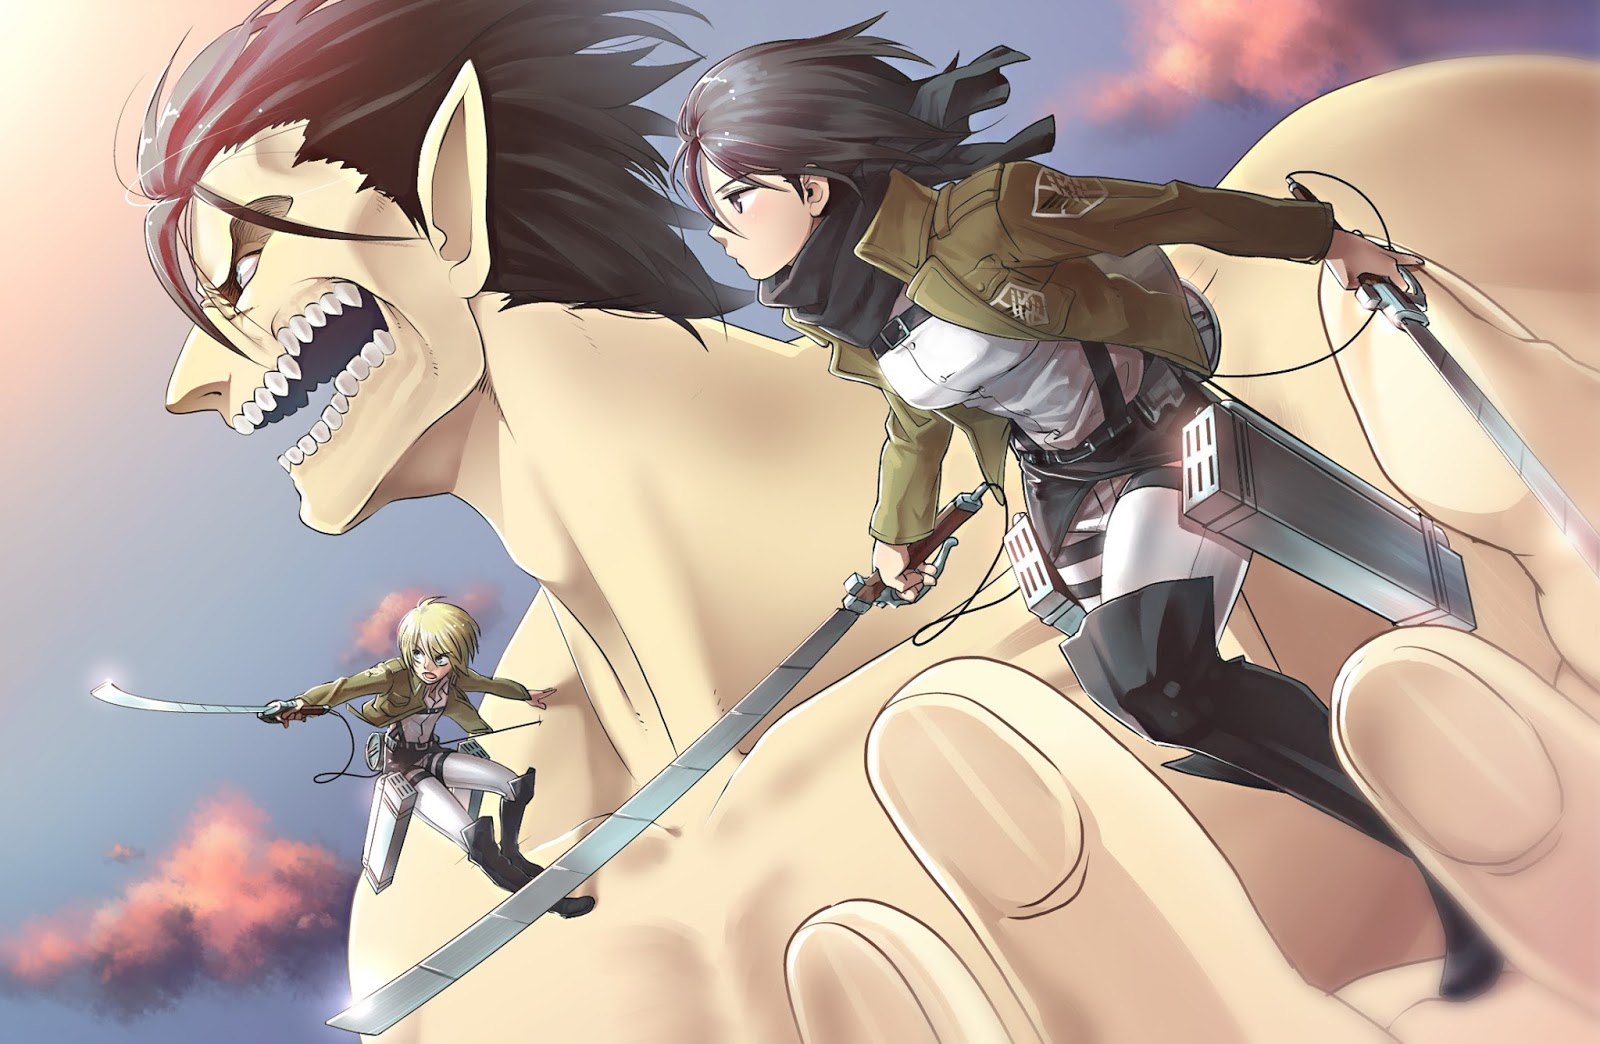 Free Download Eren Jaeger Titan Form Mikasa Ackerman Armin